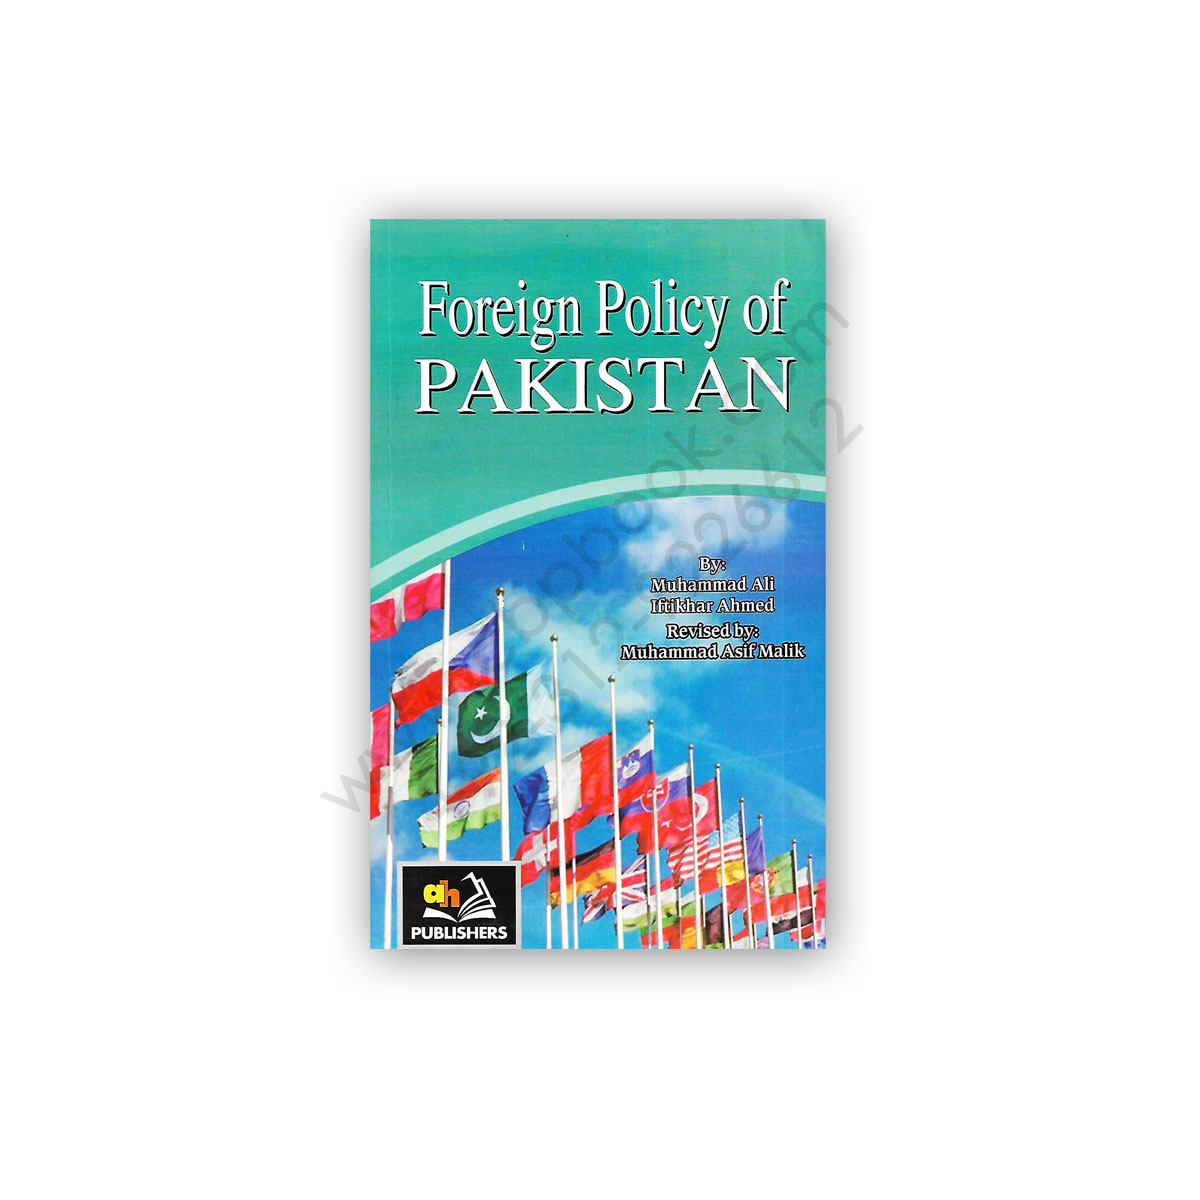 foreign policy of pakistan by m ali & iftikhar ahmed - ah publishers